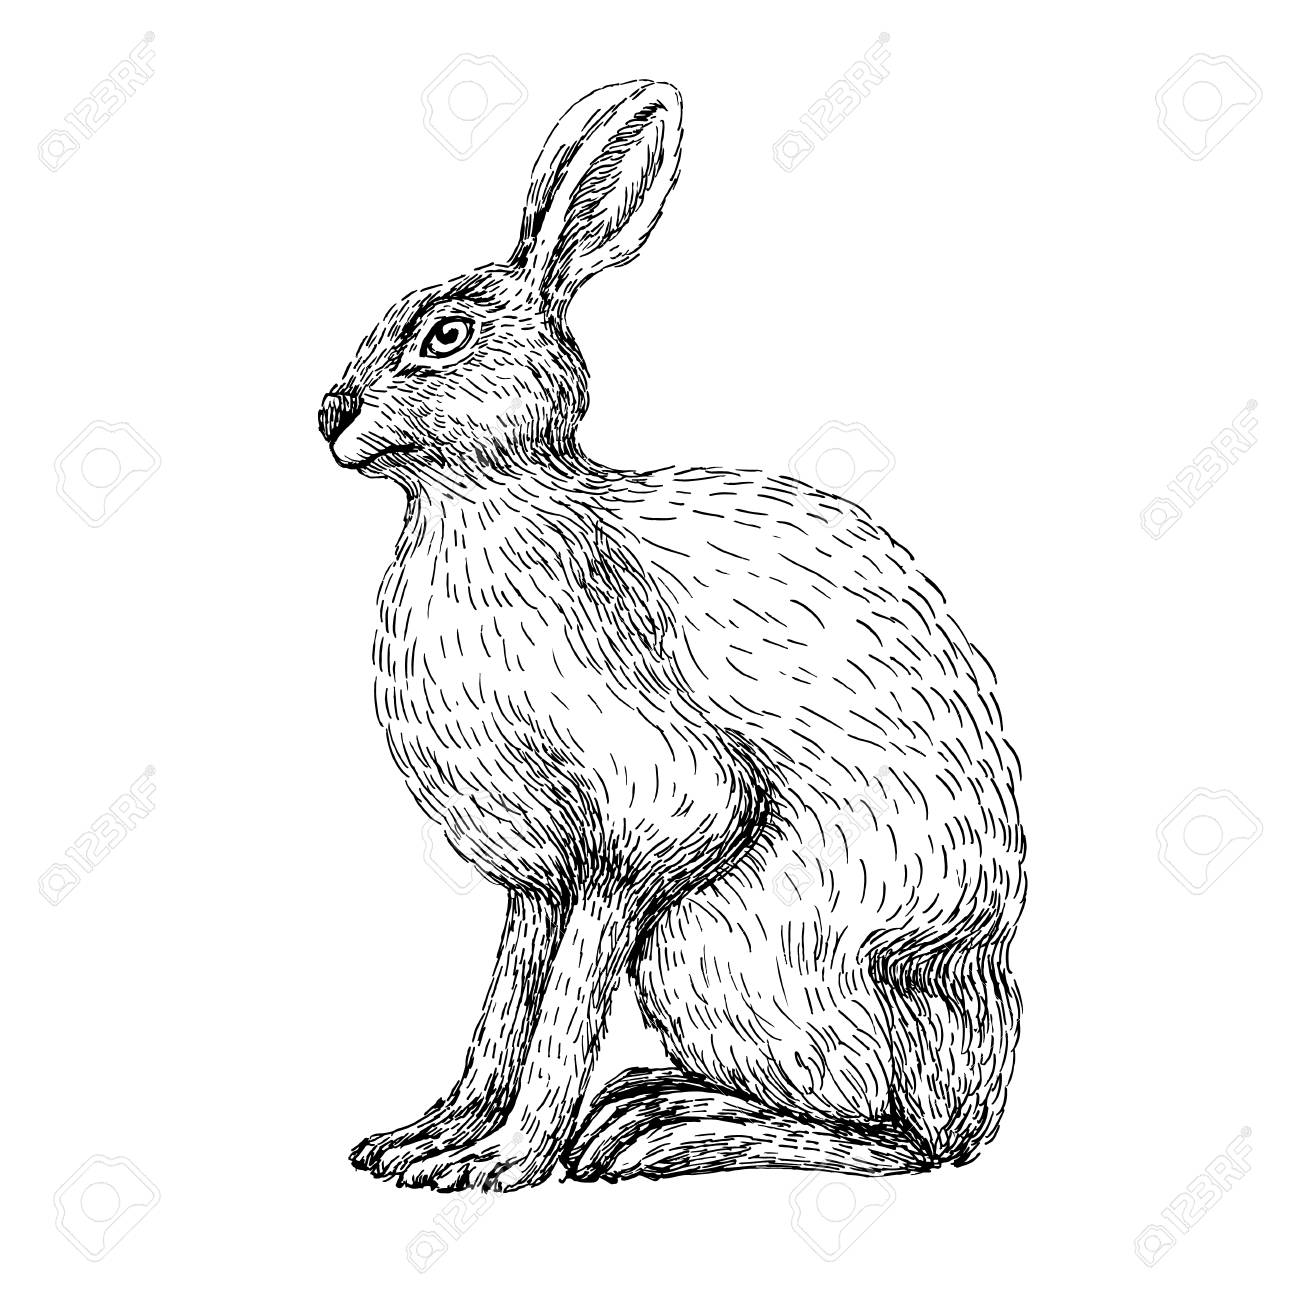 1300x1300 Sketch Line Art Drawing Of Hare Rabbit. Black And White Vector